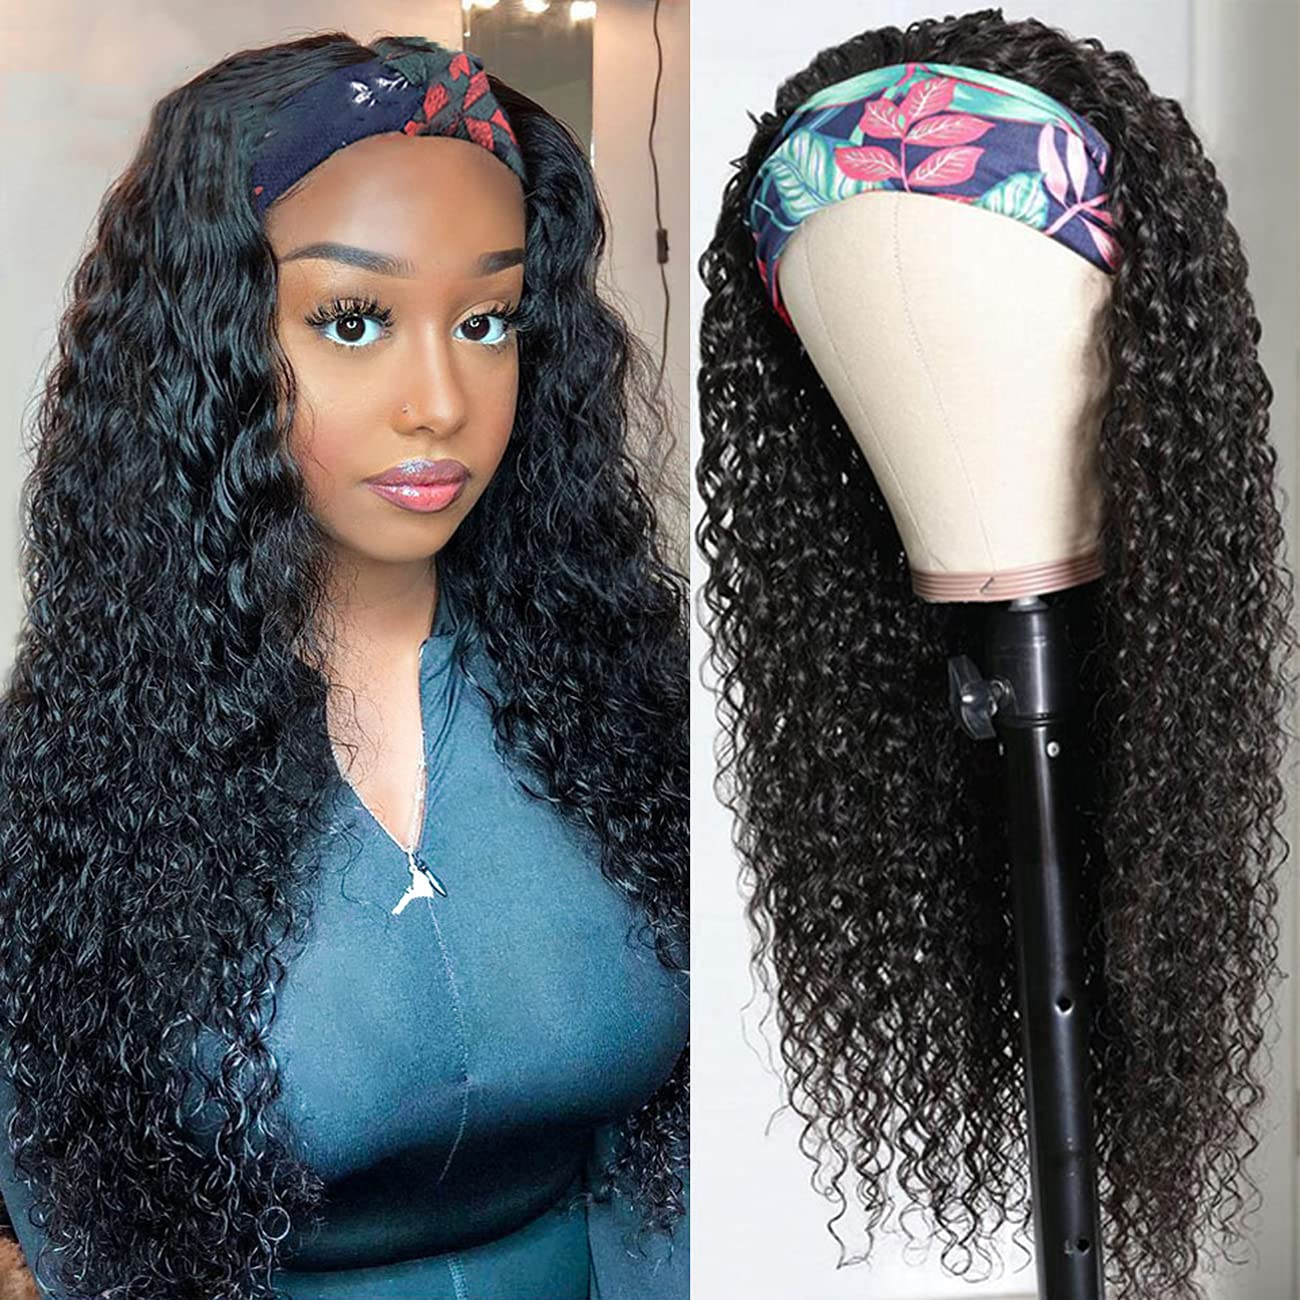 Headband Wig for Black Challenge the lowest price Women Water High quality new Wave Lace Hair None Human Fro